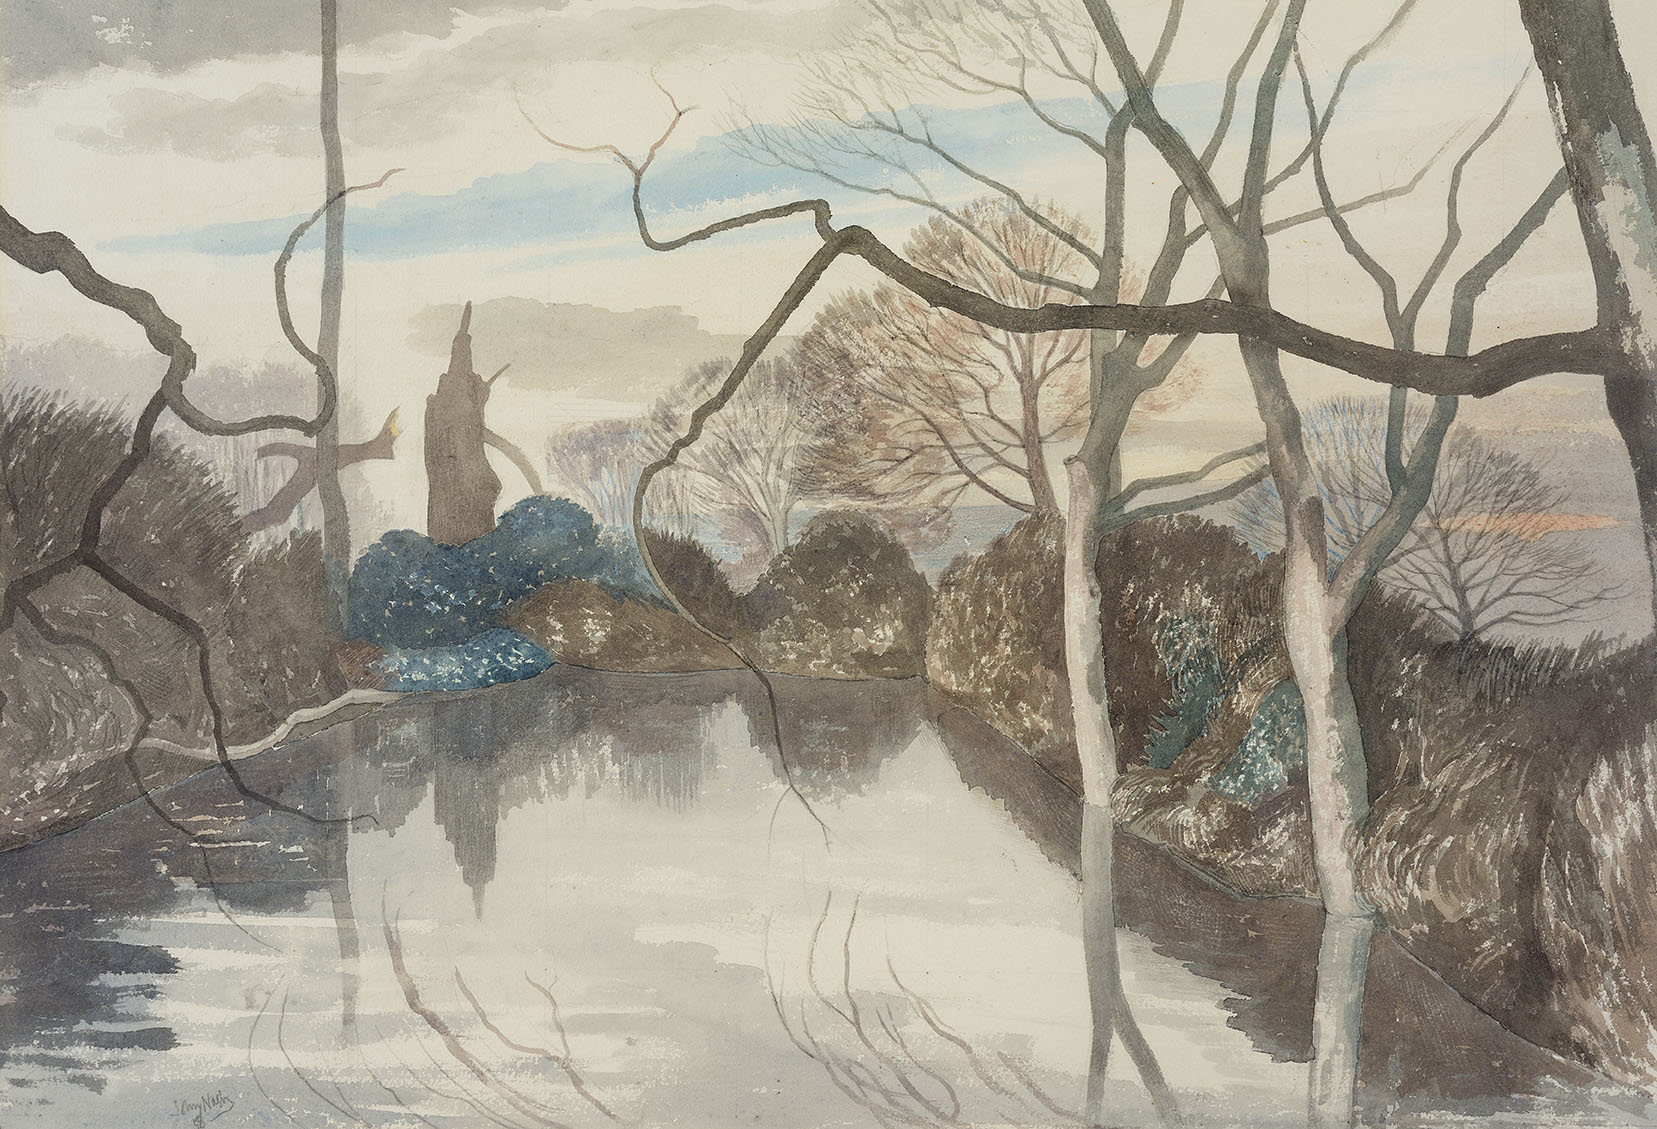 John Northcote Nash CBE, RA (1893-1977)    February Evening, Glemham, Suffolk,  1958, Watercolour on paper, 15 x 22 in, Signed and dated  [CAS 1]